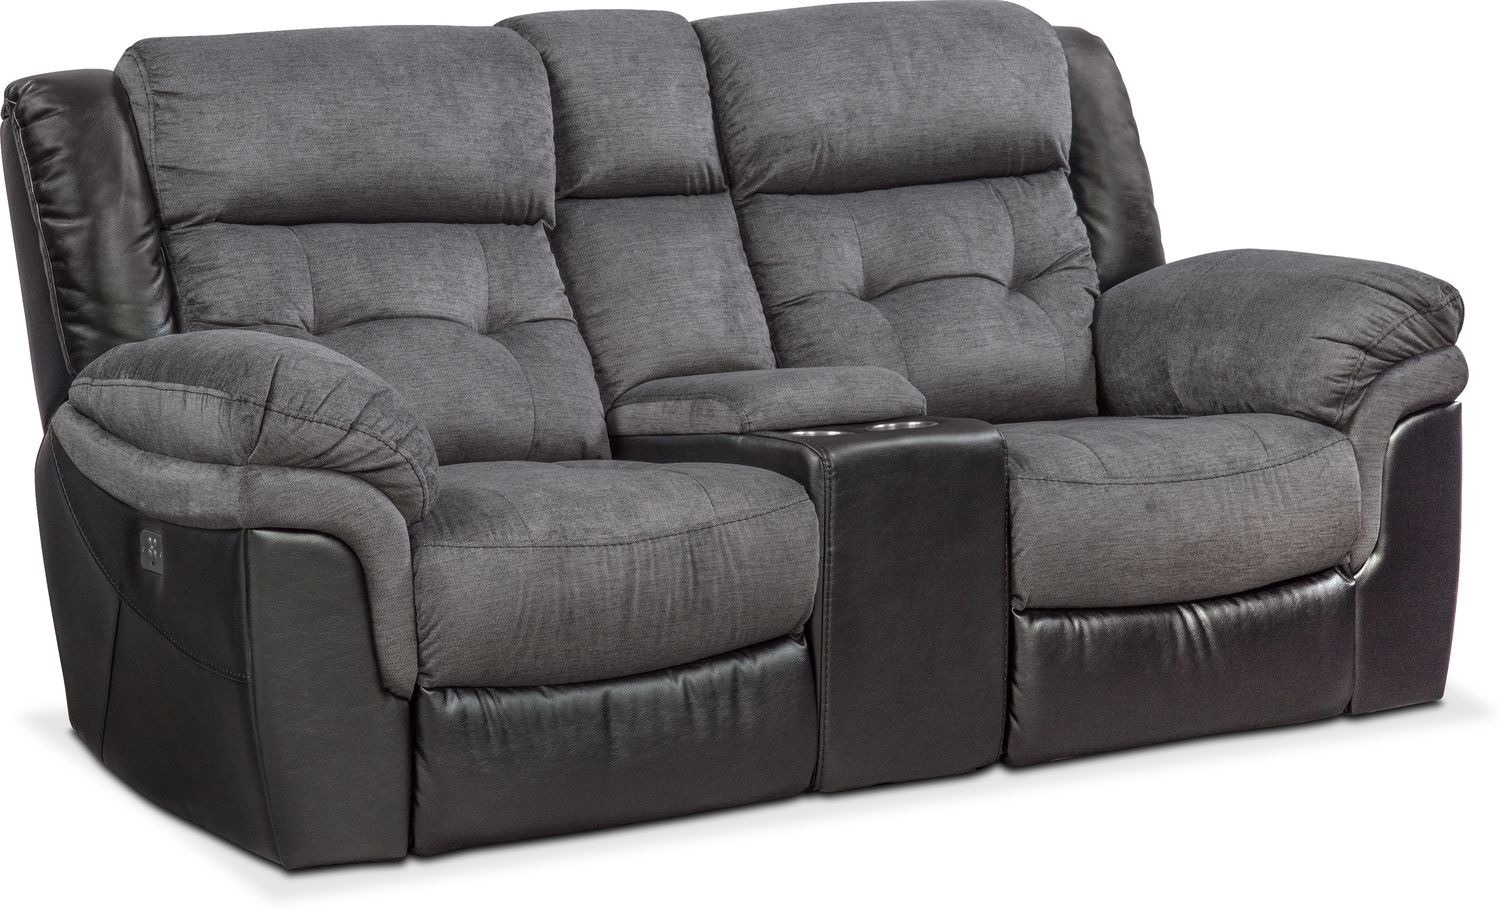 Tacoma Dual Power Reclining Loveseat With Console Black